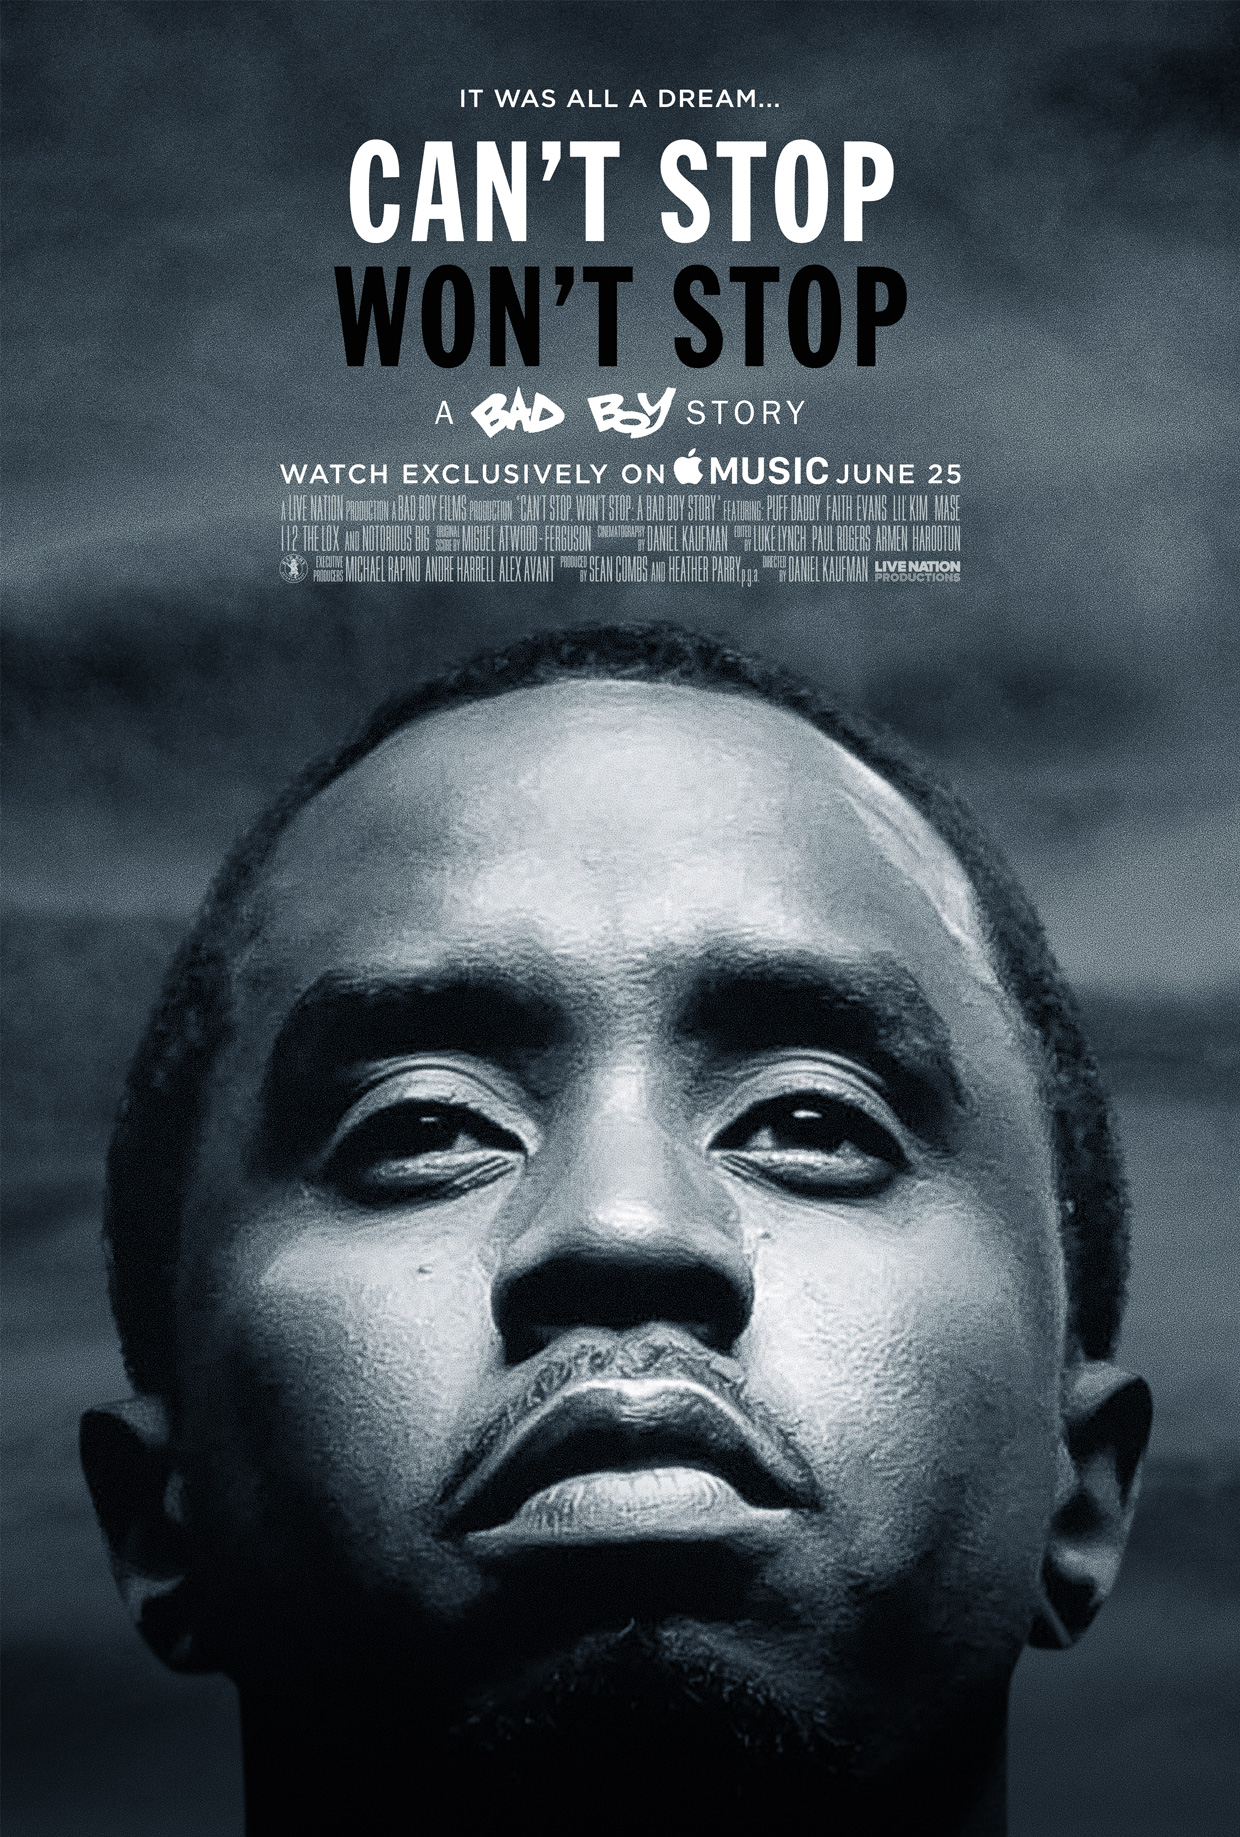 cant-stop-wont-stop-poster-2017-billboard-1240